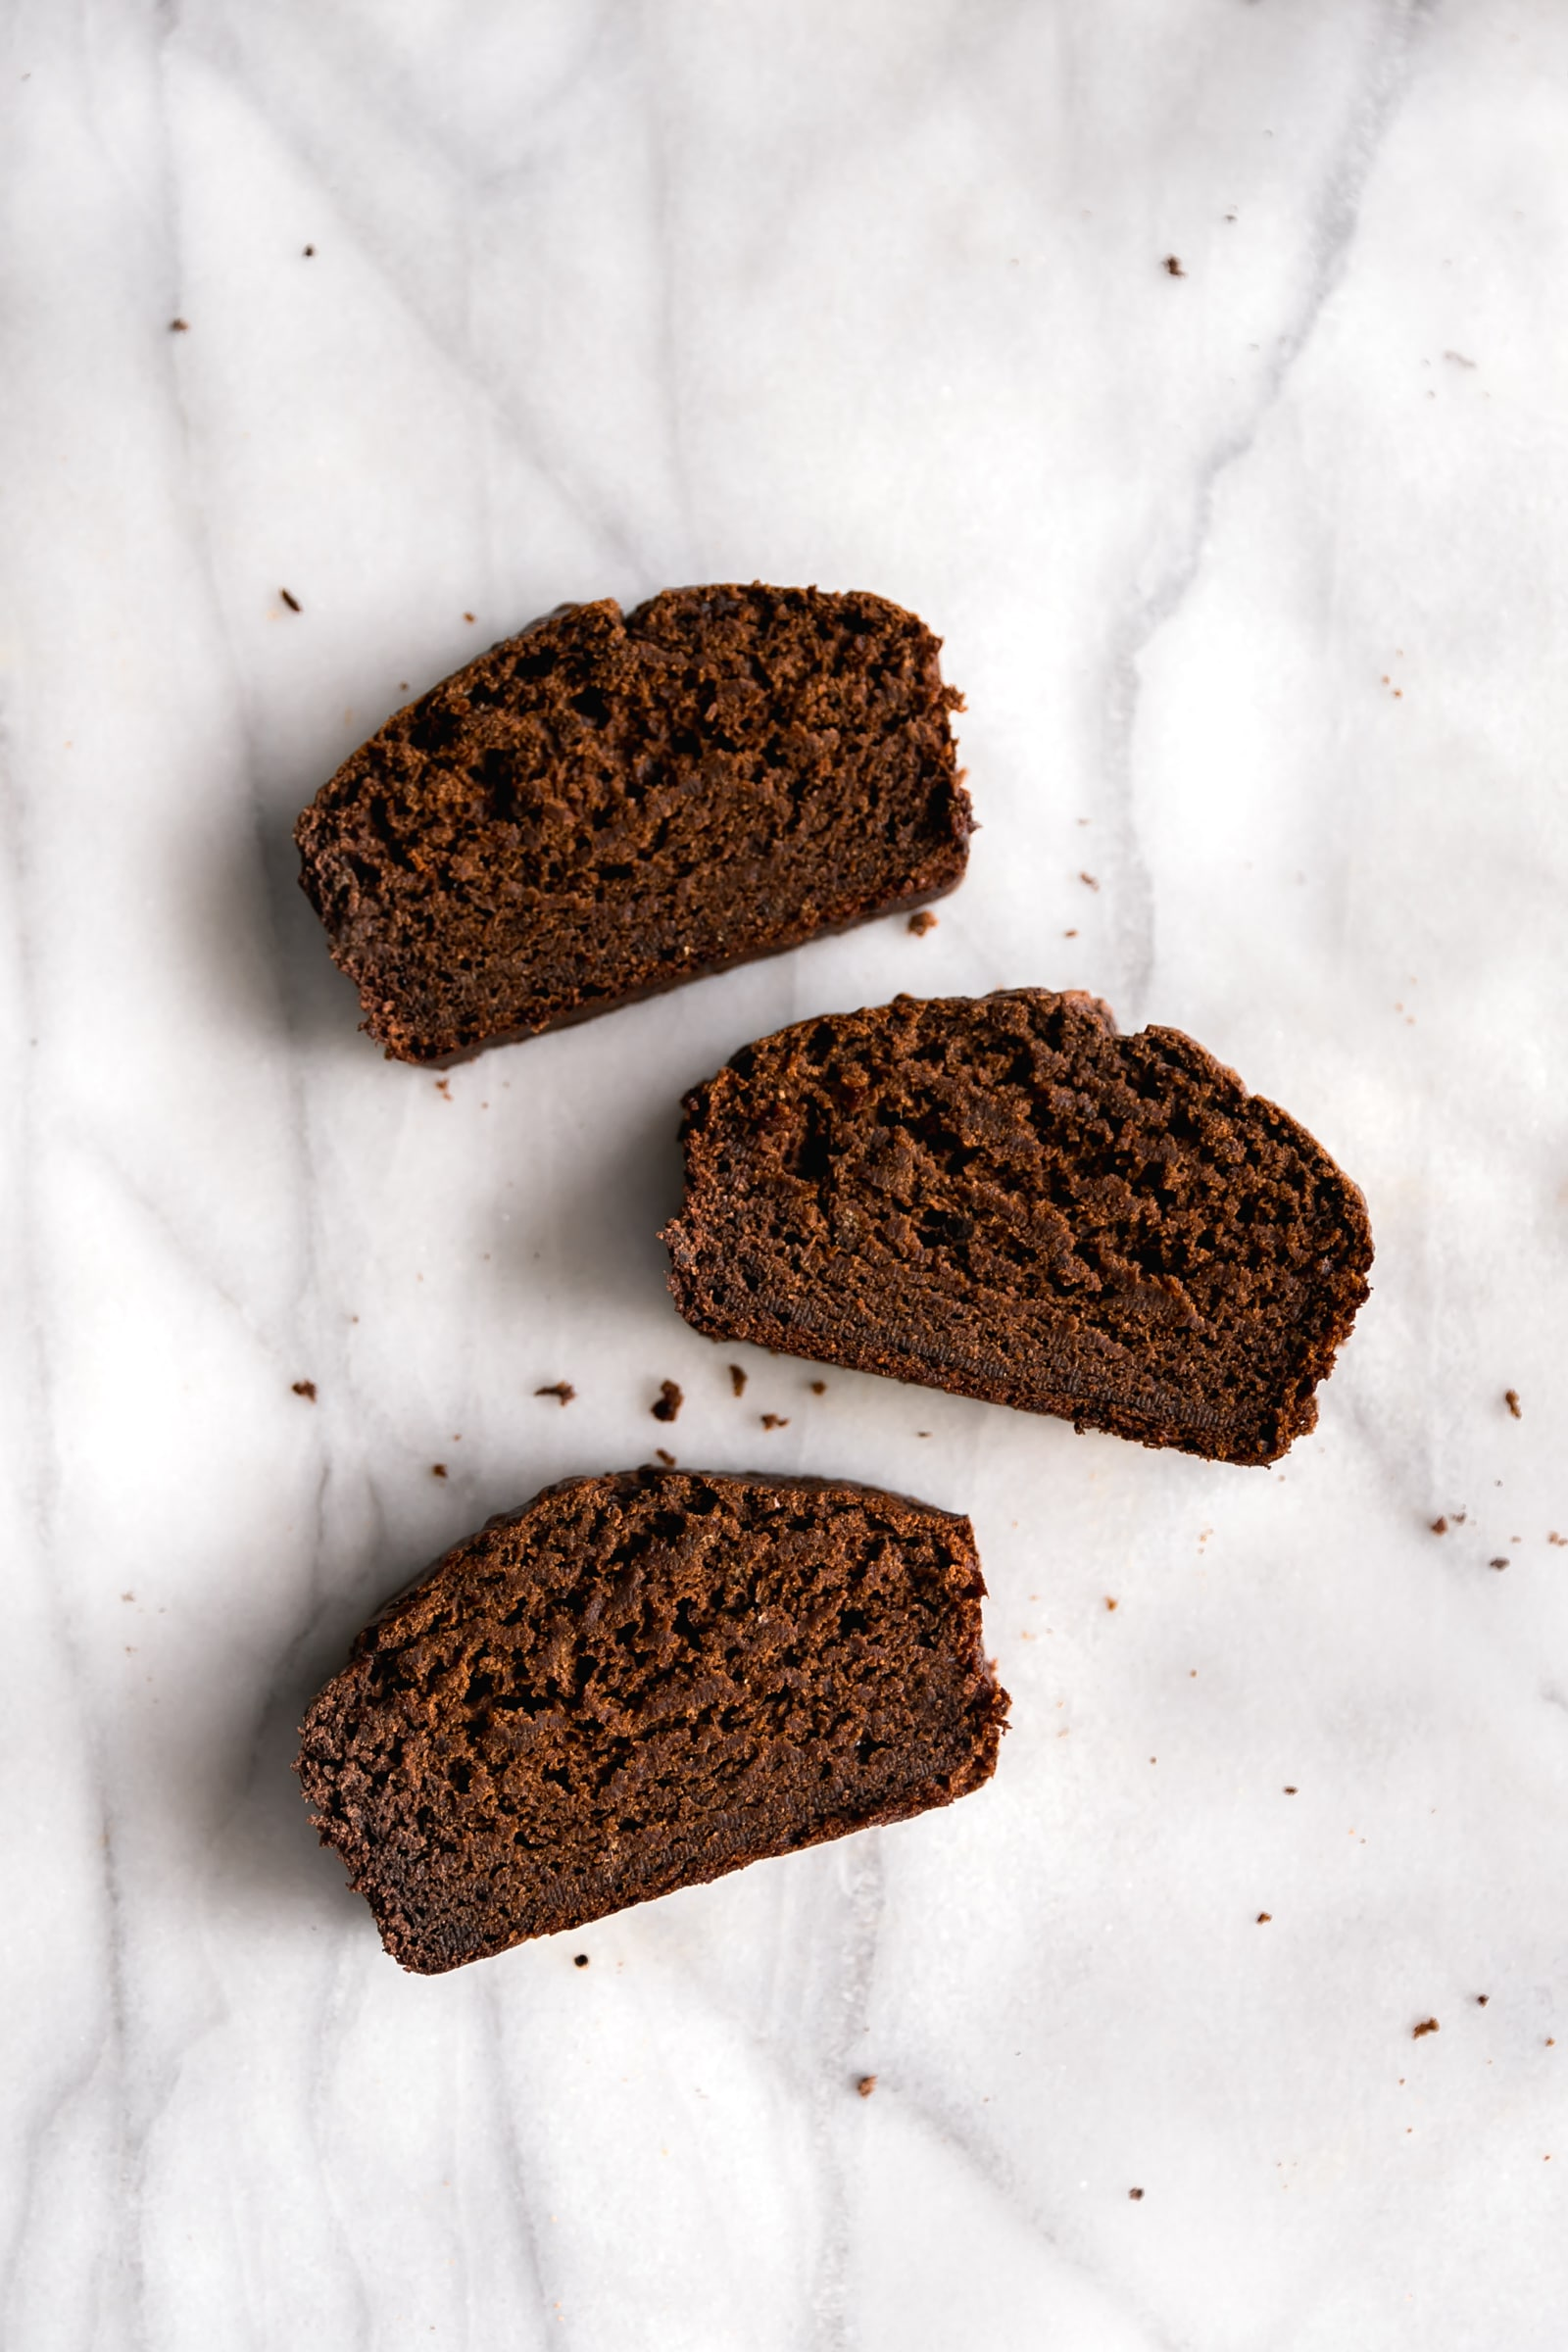 Moist Chocolate Banana Bread. Super moist and deliciously sweet chocolate banana bread made with real cocoa without chocolate chips! Perfect for breakfast or snack.